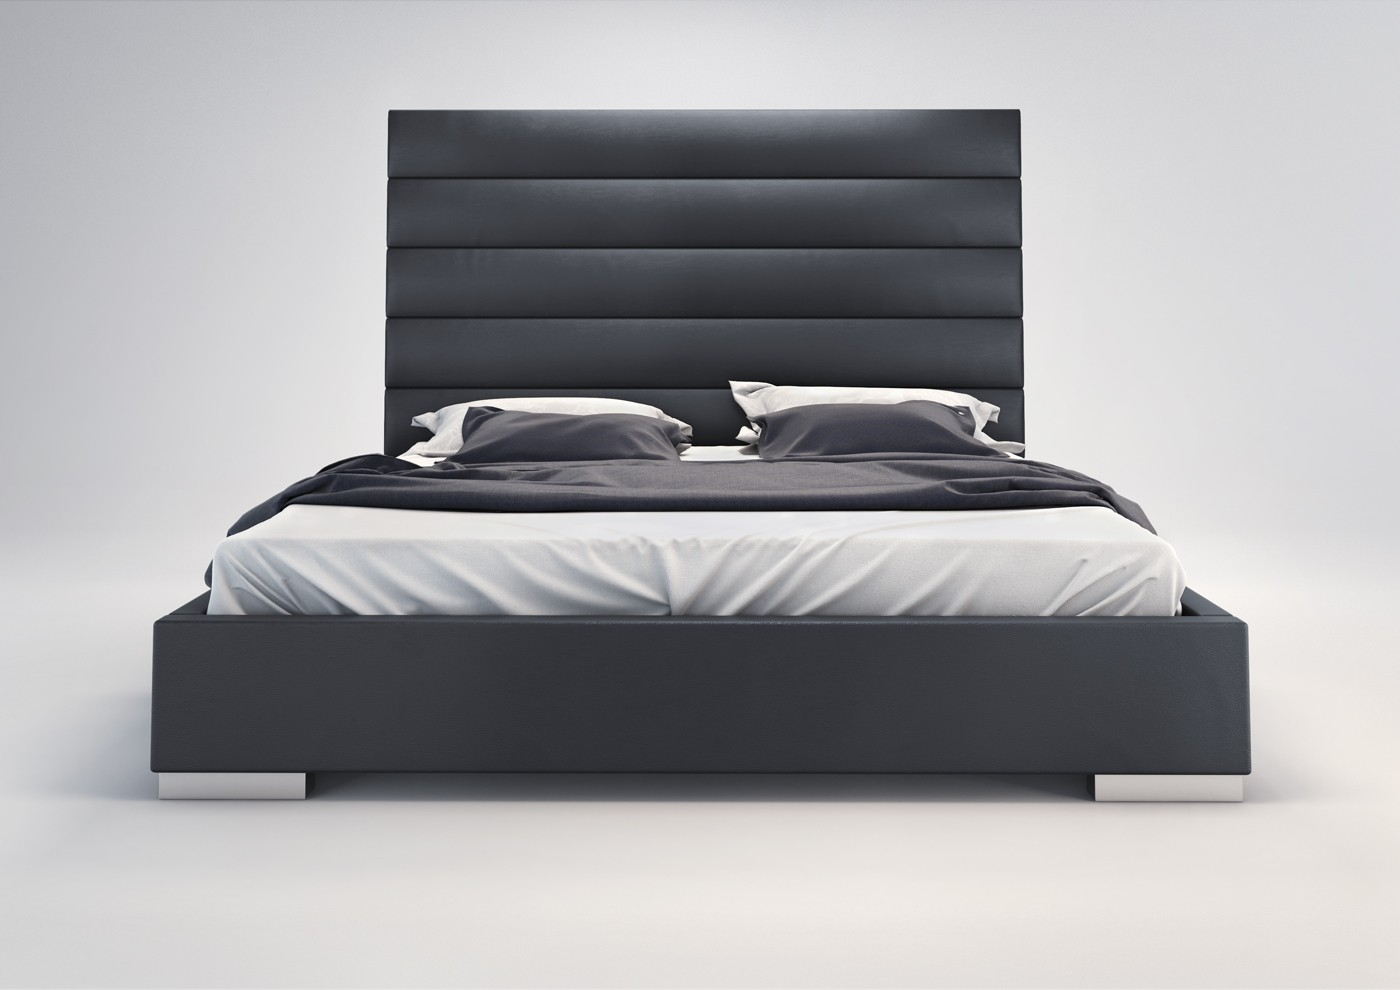 prince modern leather bed by modloft nova interiors - prince modern leather bed by modloft